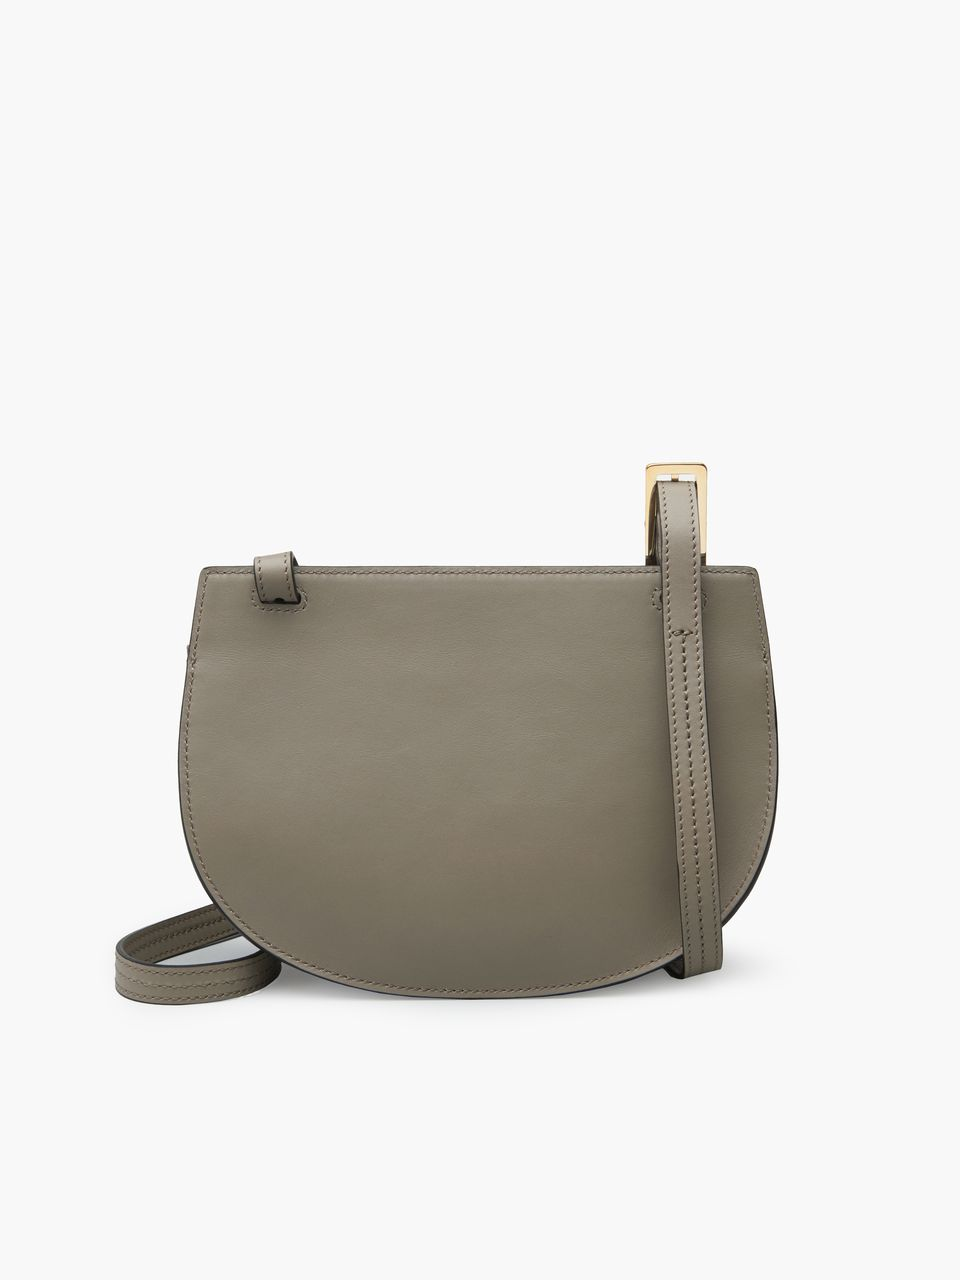 clohe handbags - Chlo�� Georgia Shoulder Bag, Women\u0026#39;s Bags | Chlo�� Official Website ...